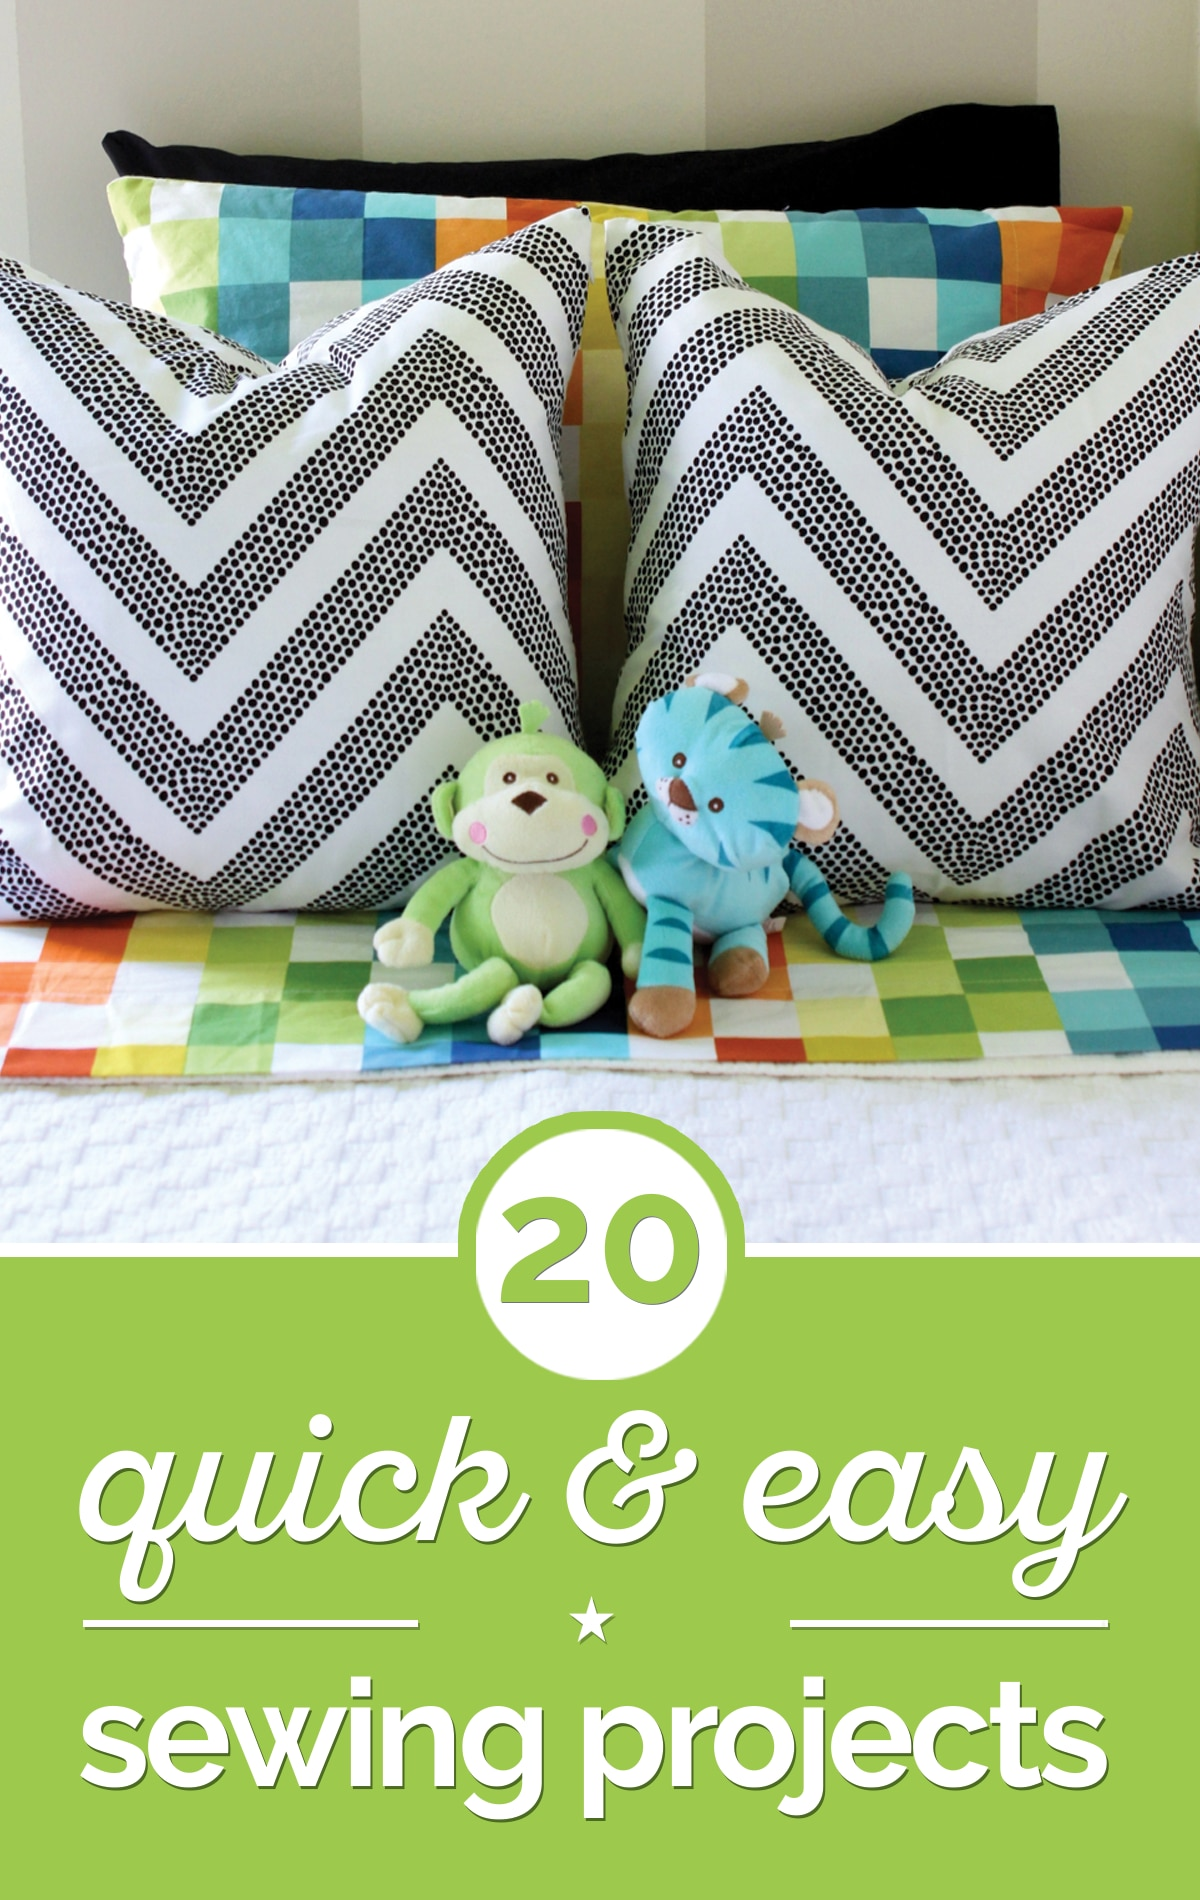 20 quick easy sewing projects tutorials thegoodstuff 20 quick easy sewing projects for beginners tutorials thegoodstuff negle Images